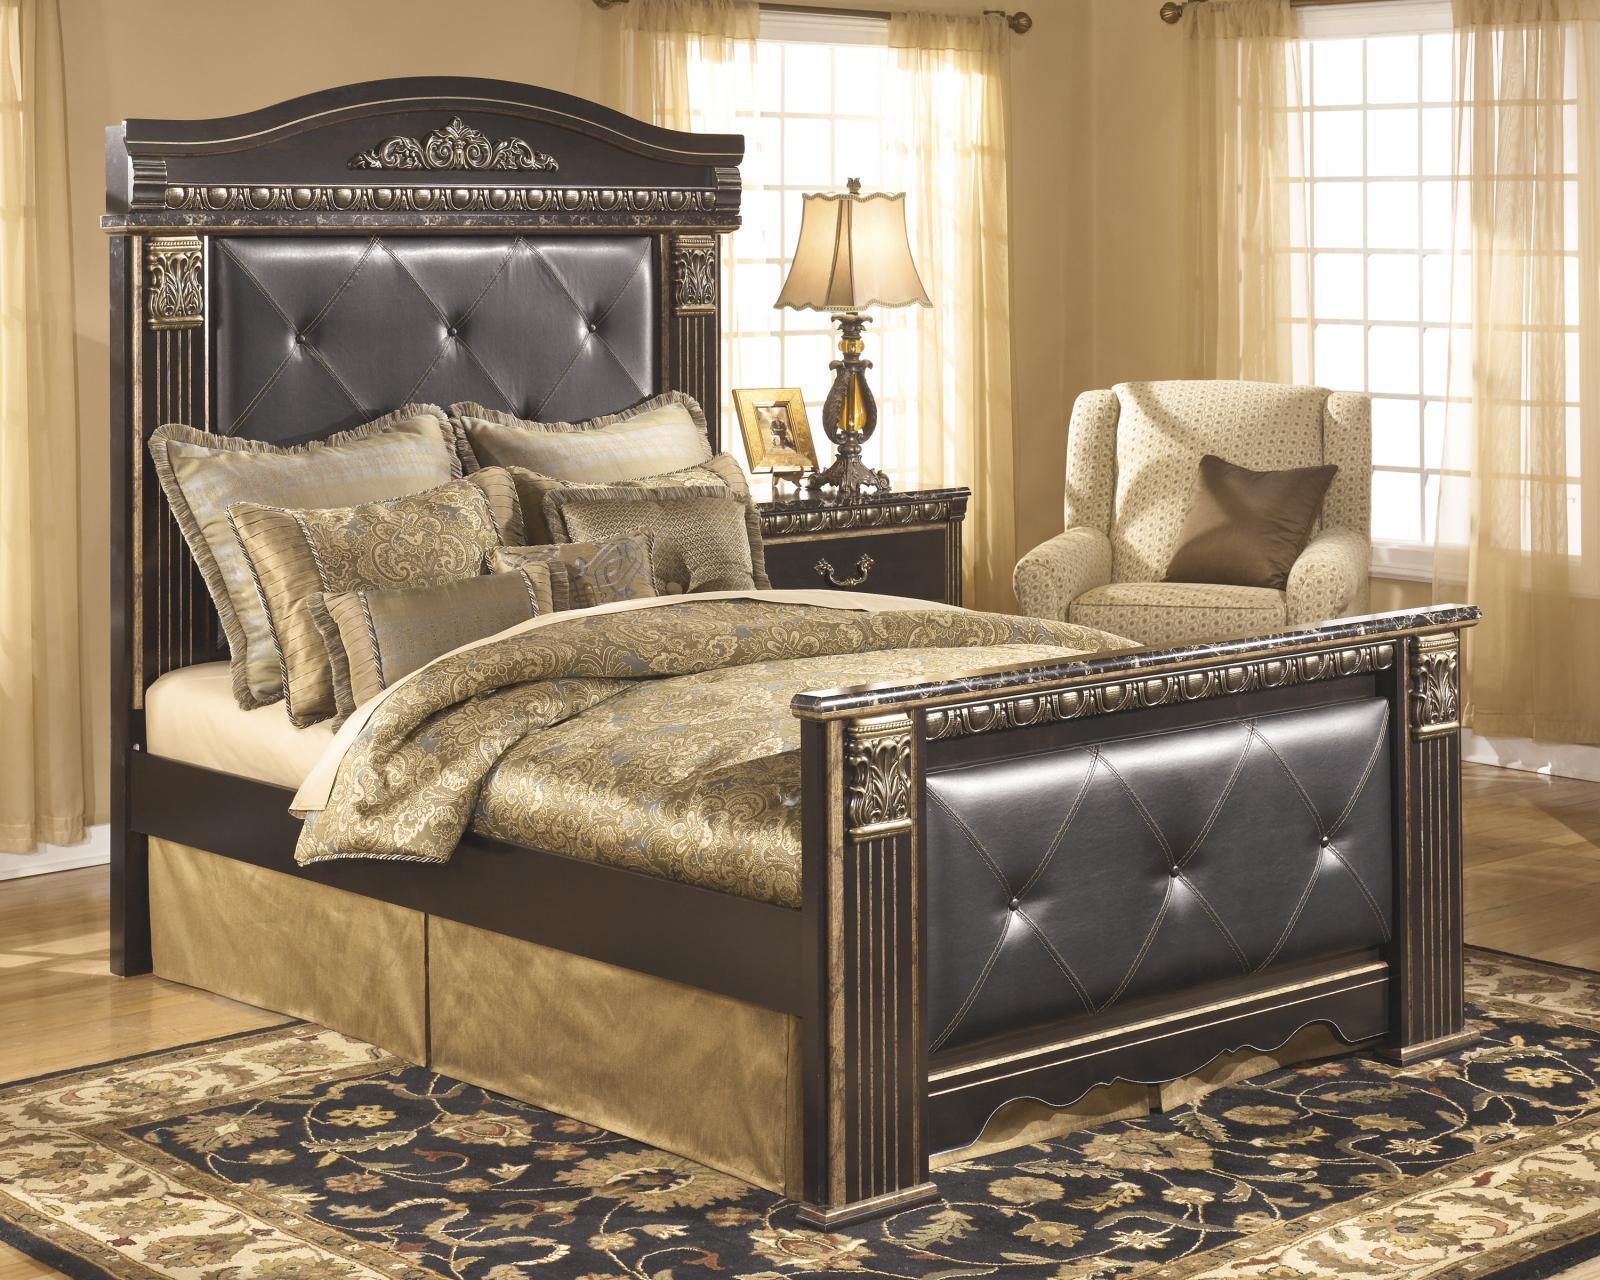 ashley coal creek b175 queen size mansion bedroom set 2 night stands